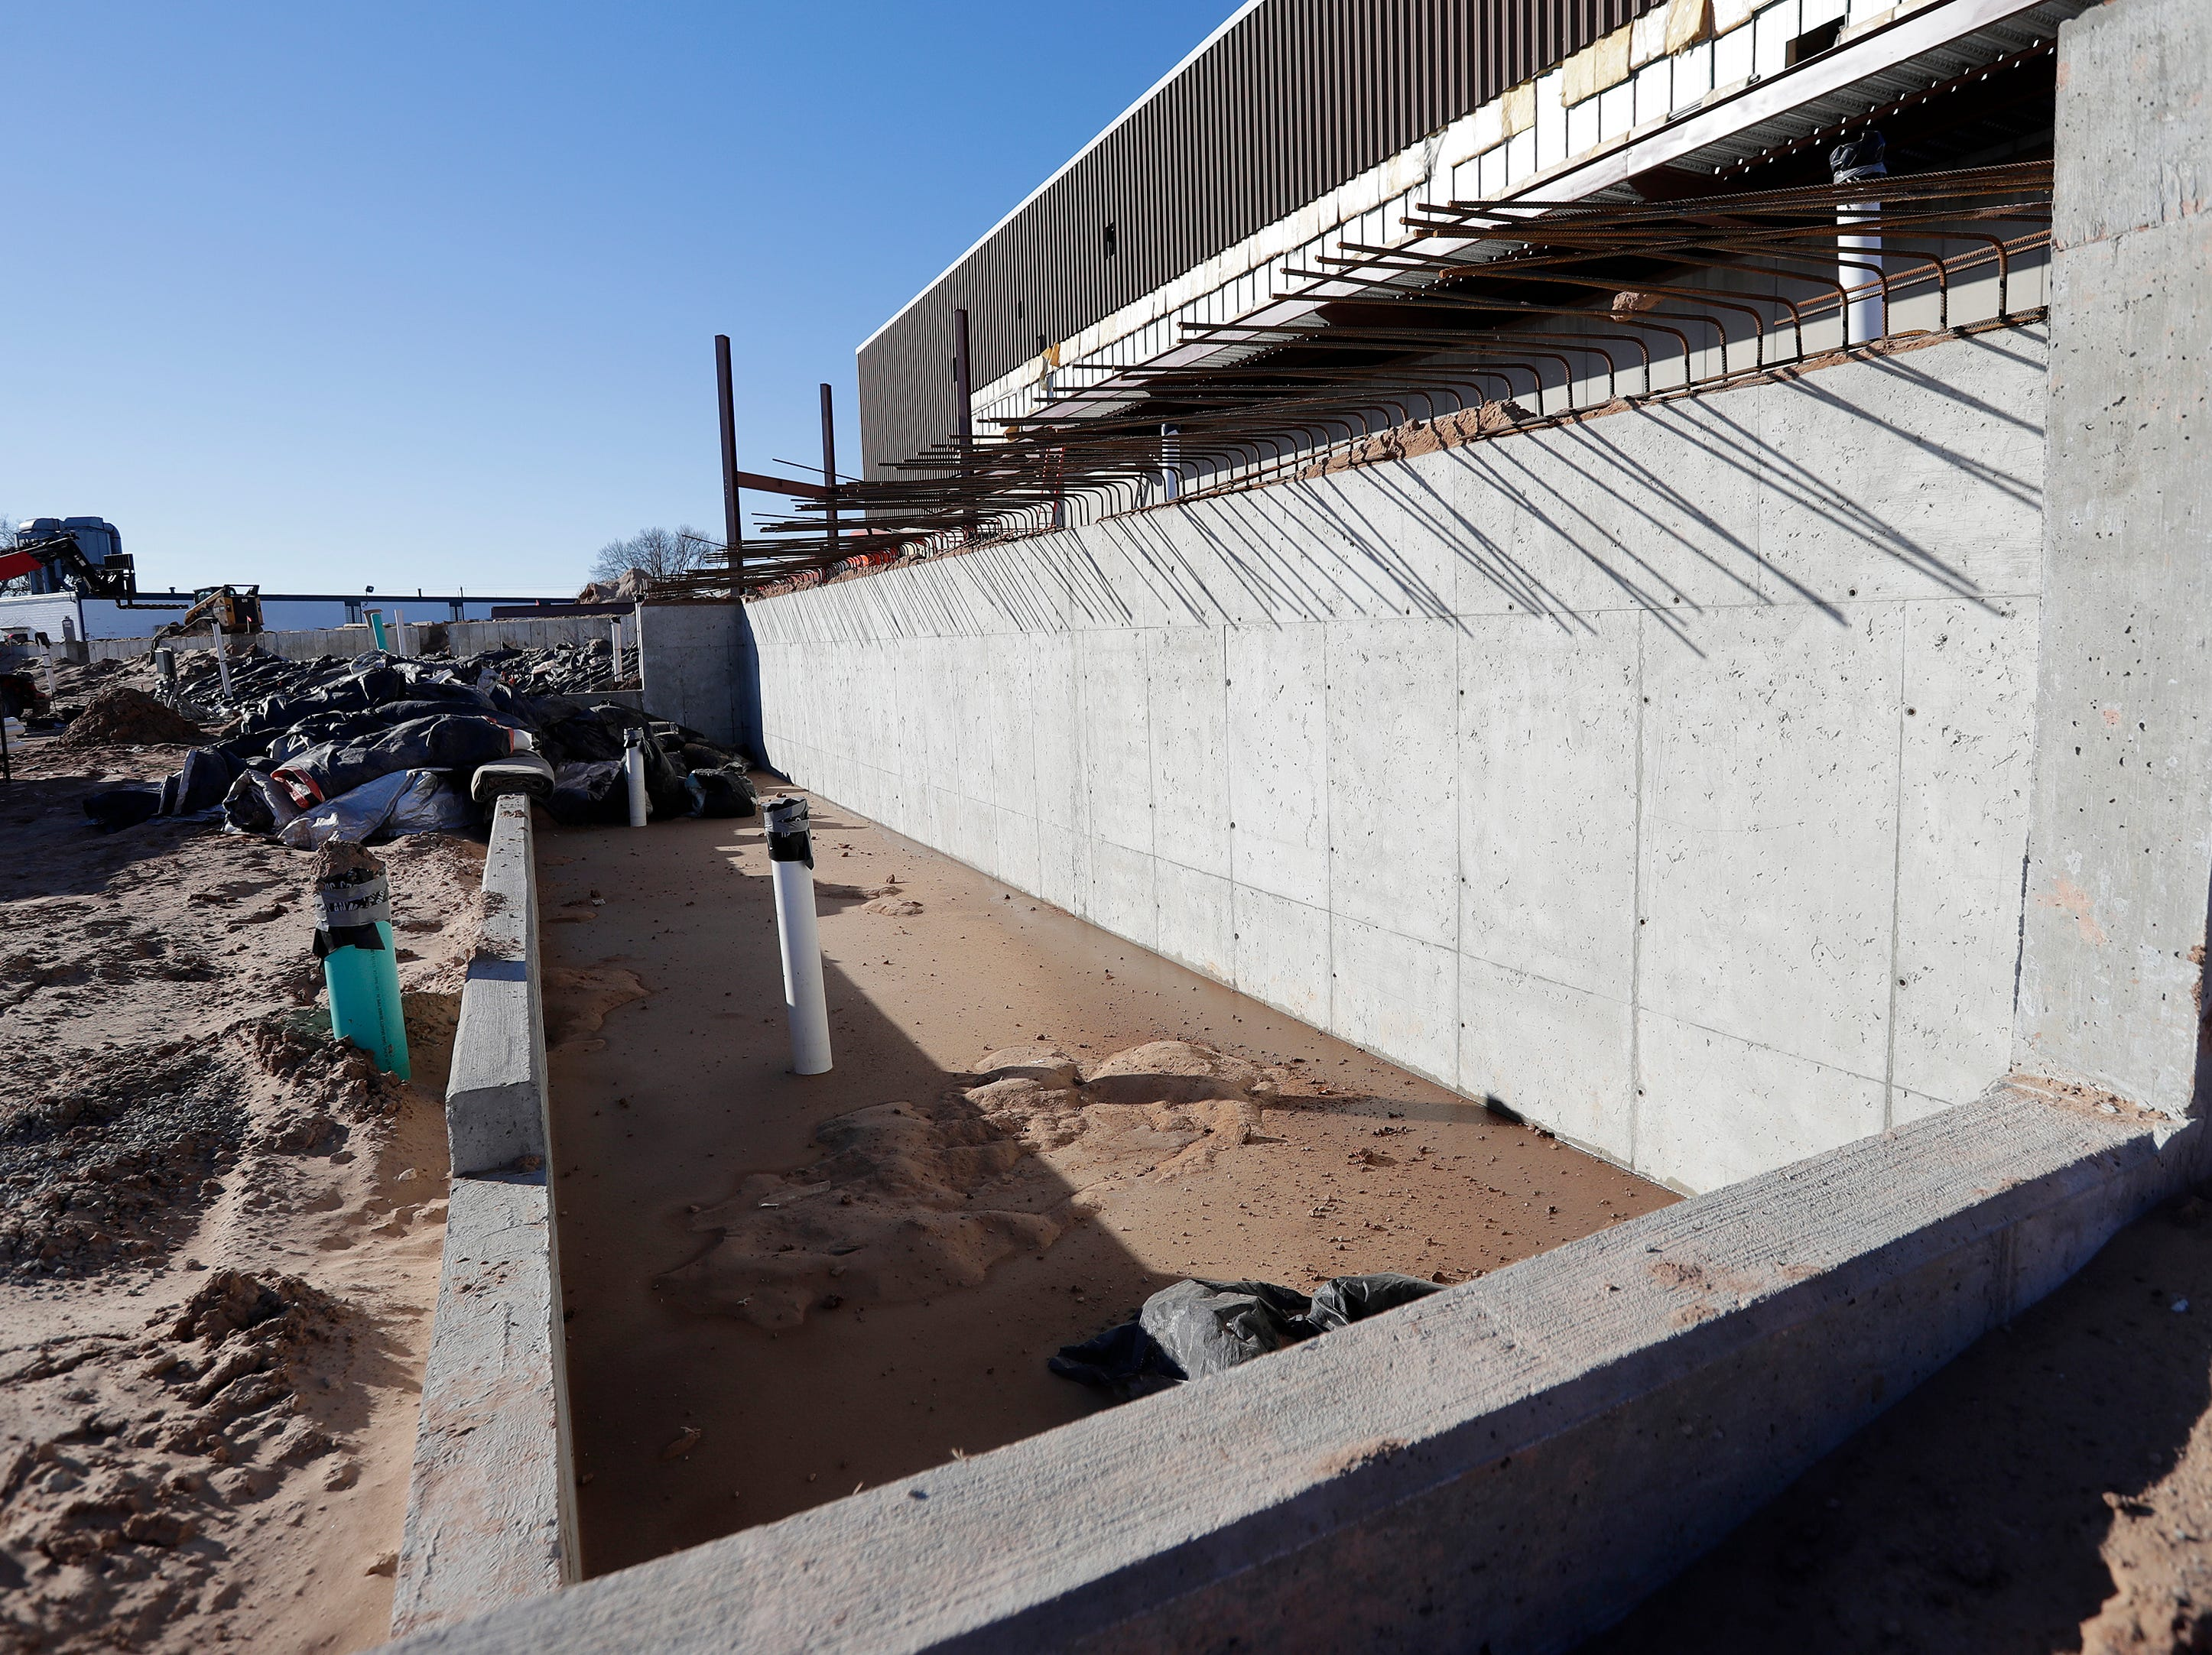 The home dugout at Capital Credit Union Park is shown under construction on Wednesday, January 16, 2019 in Ashwaubenon, Wis. The stadium is set to open this spring and will host the Green Bay Booyah baseball team in the Northwoods League and a United Soccer Leagues League 2 team.